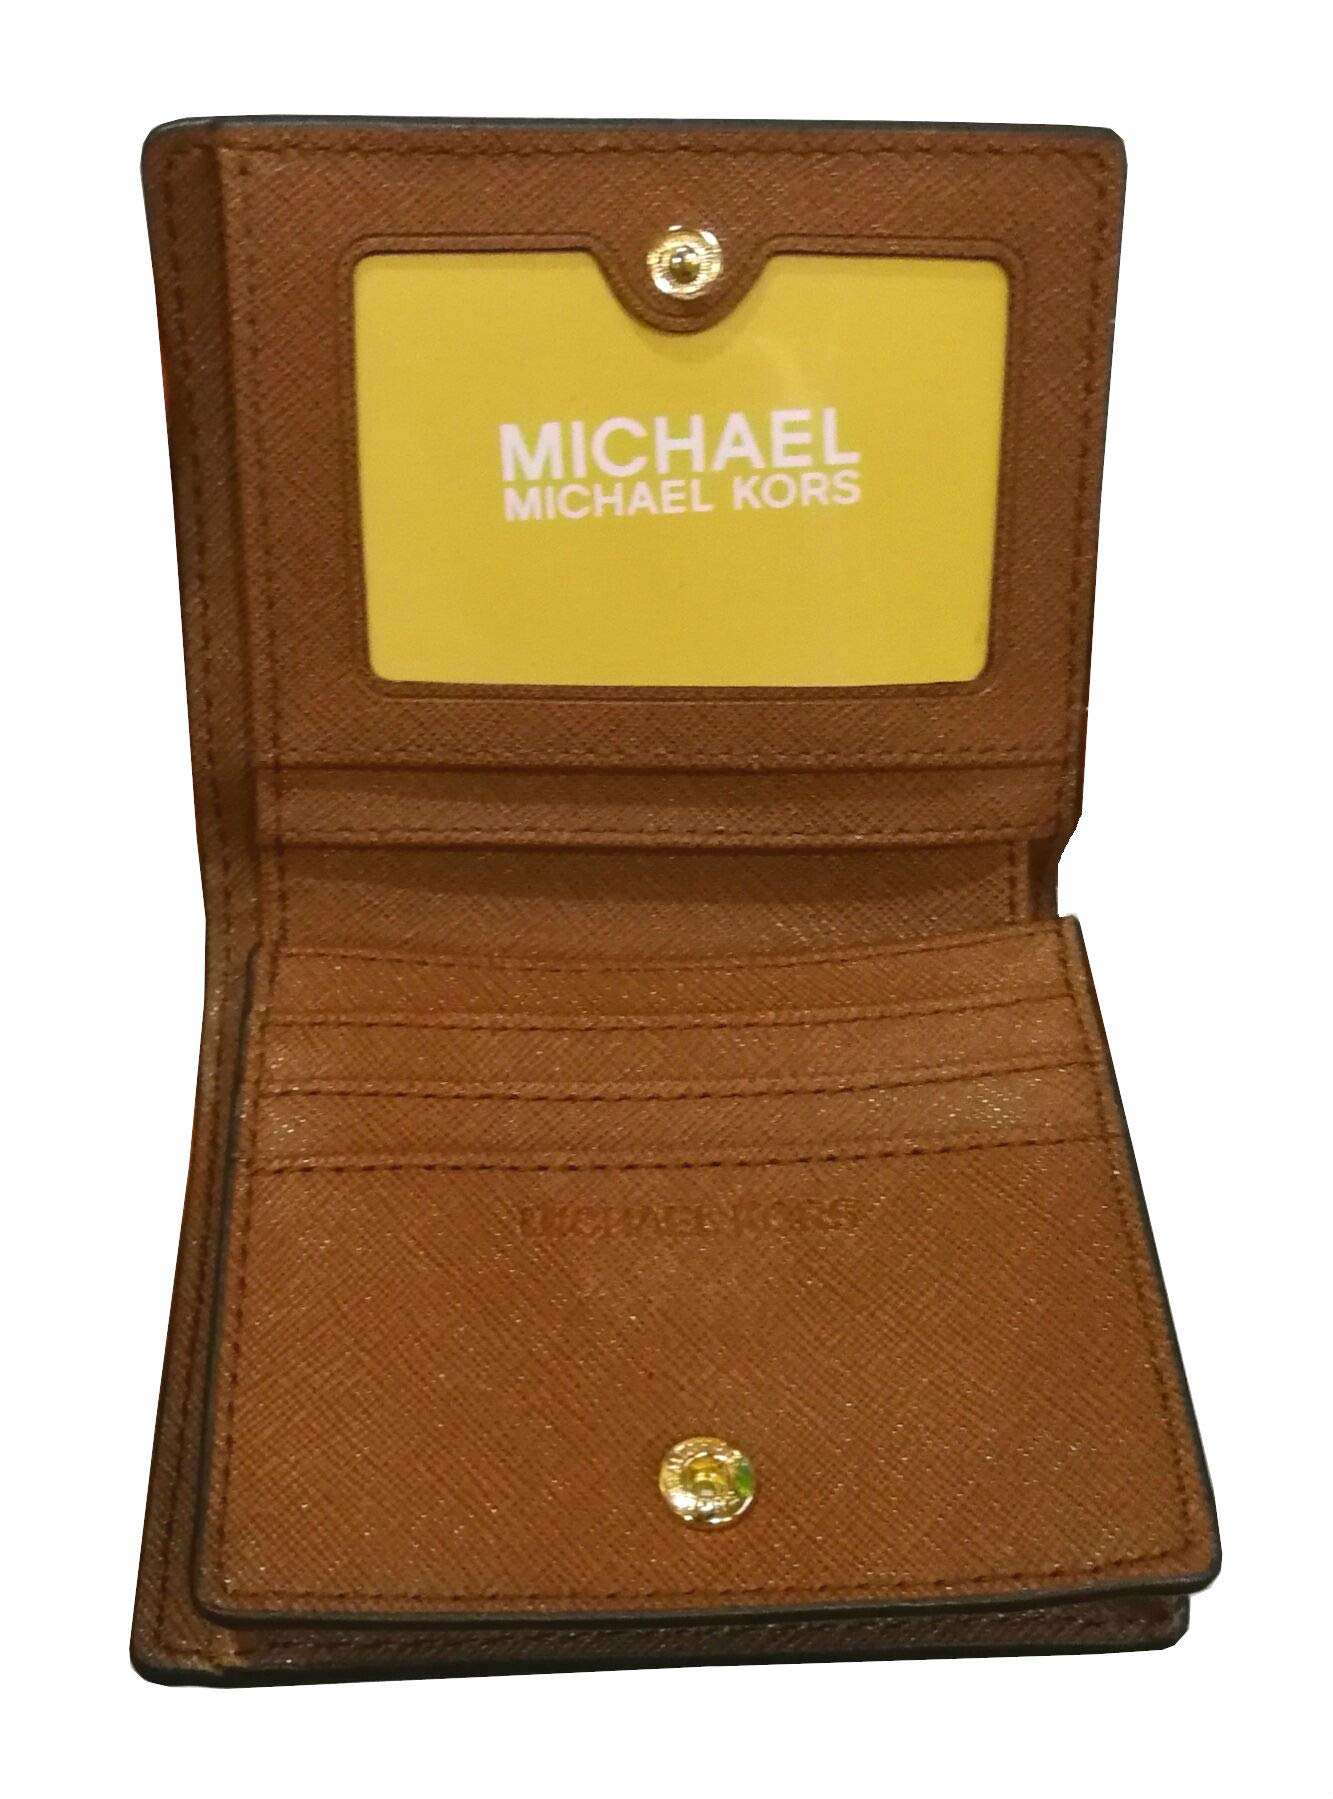 Michael Kors Fulton Leather Carryall Card Case Wallet (Luggage) by Michael Kors (Image #4)